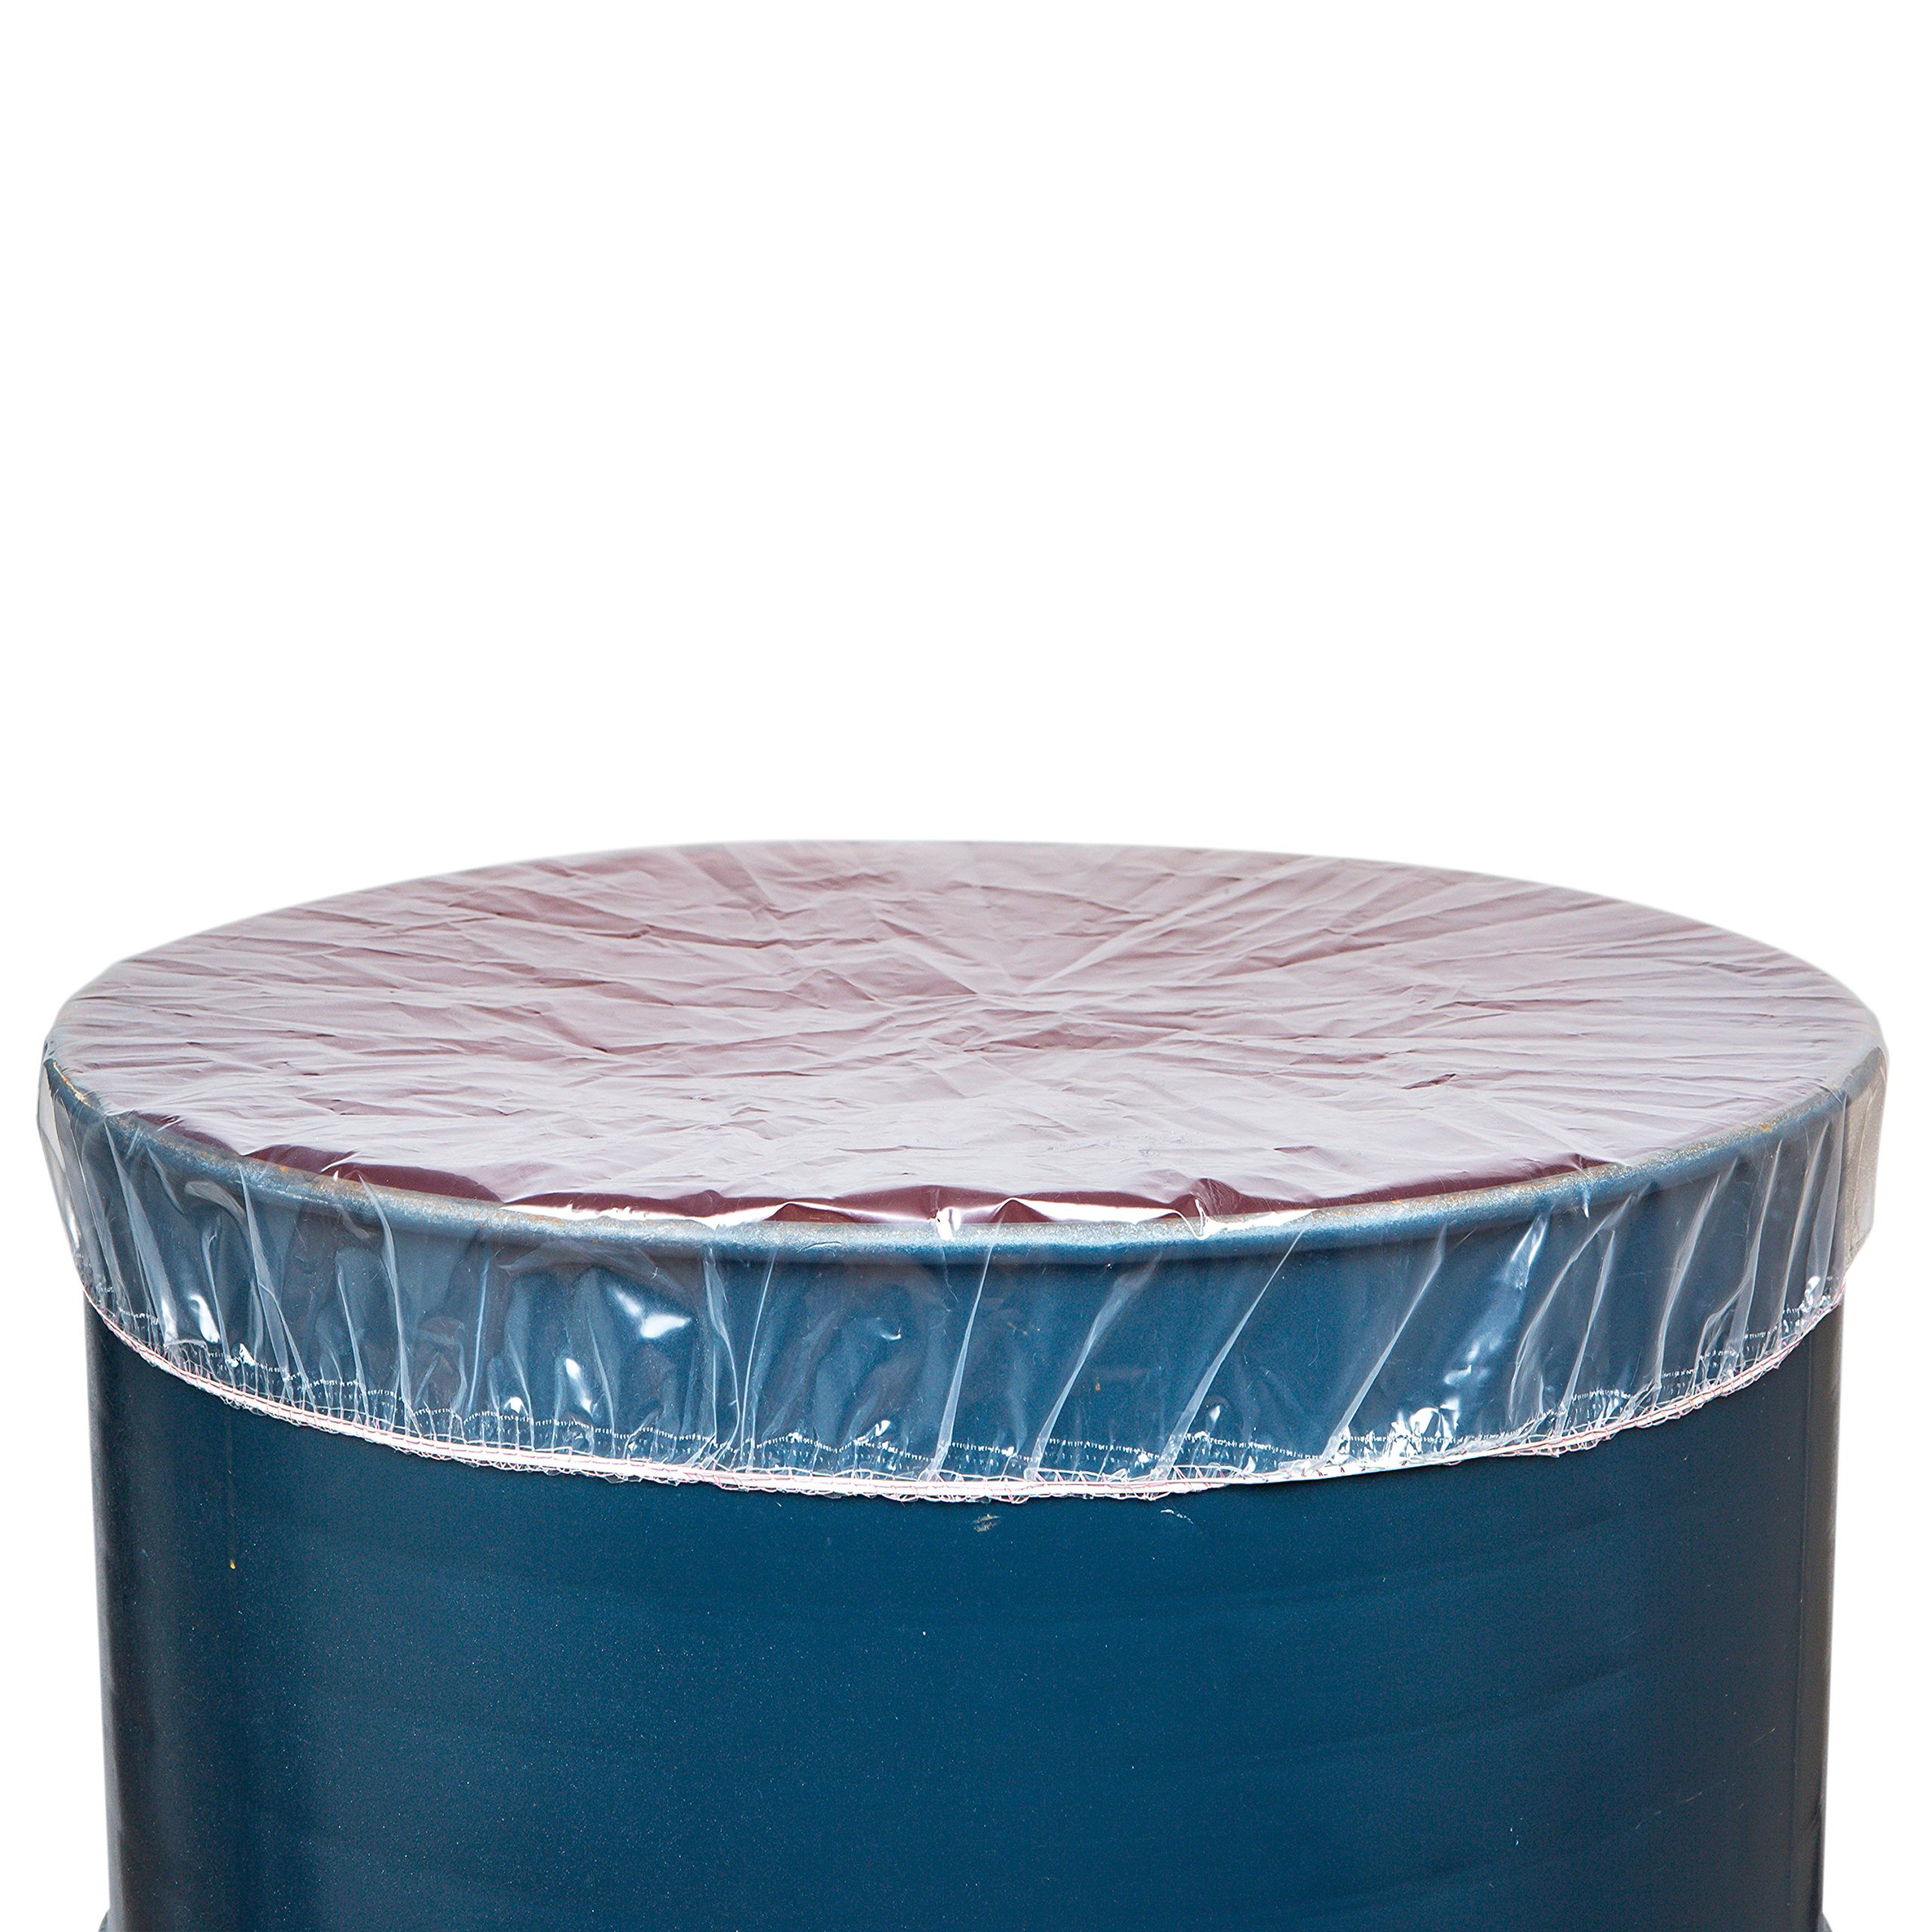 GOZE Elastic Drum Barrel Lid Cover - Snug fit - Easy Slip on/Off - 4ml Thick - Made in USA (24 inch 30 Gal, 25 Pcs)